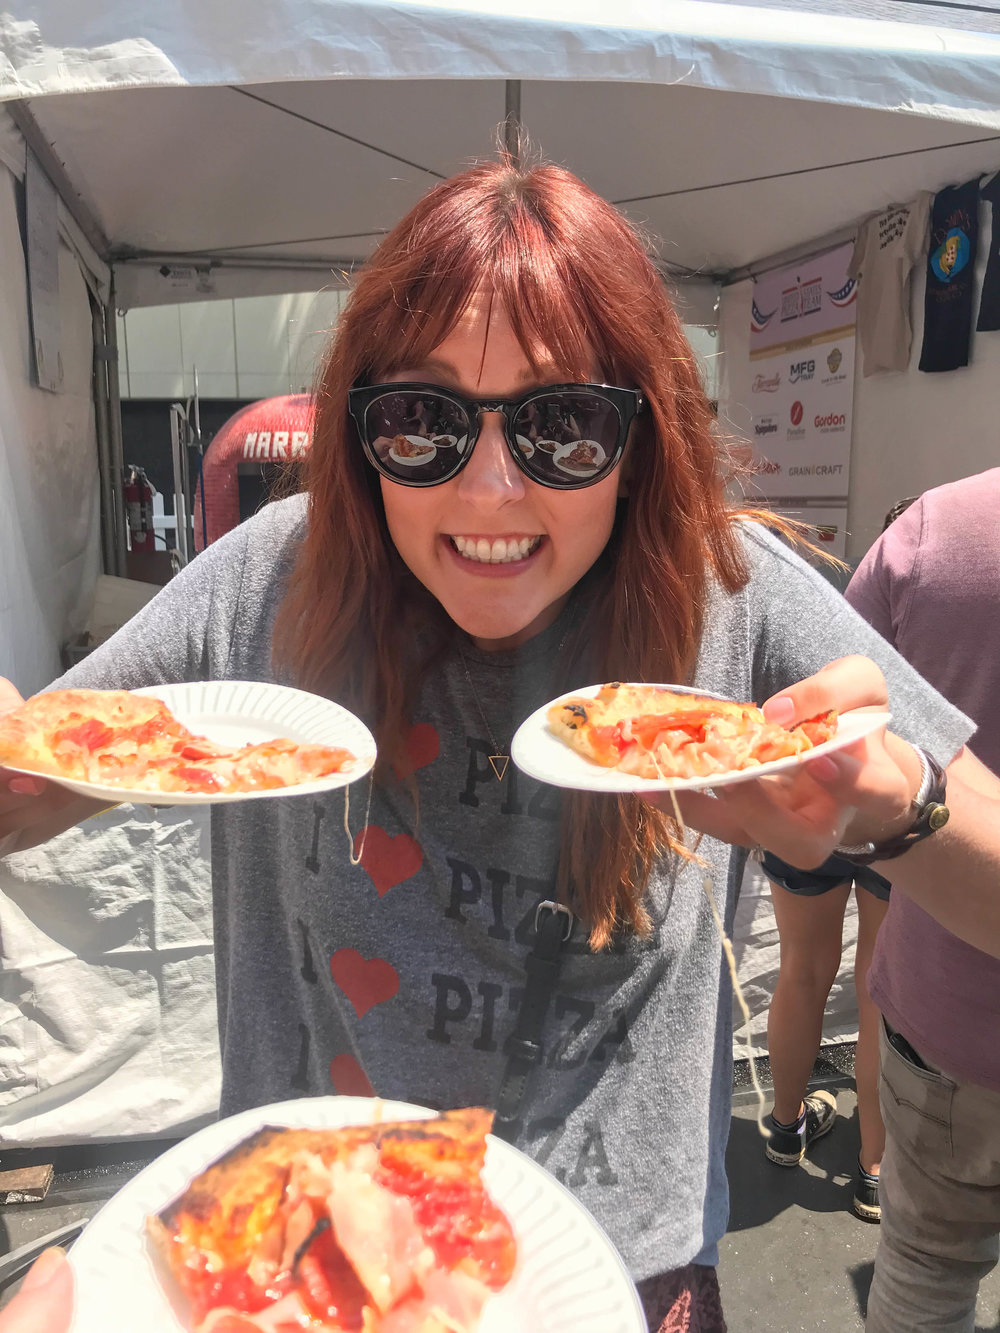 California Pizza Festival - I love Pizza!